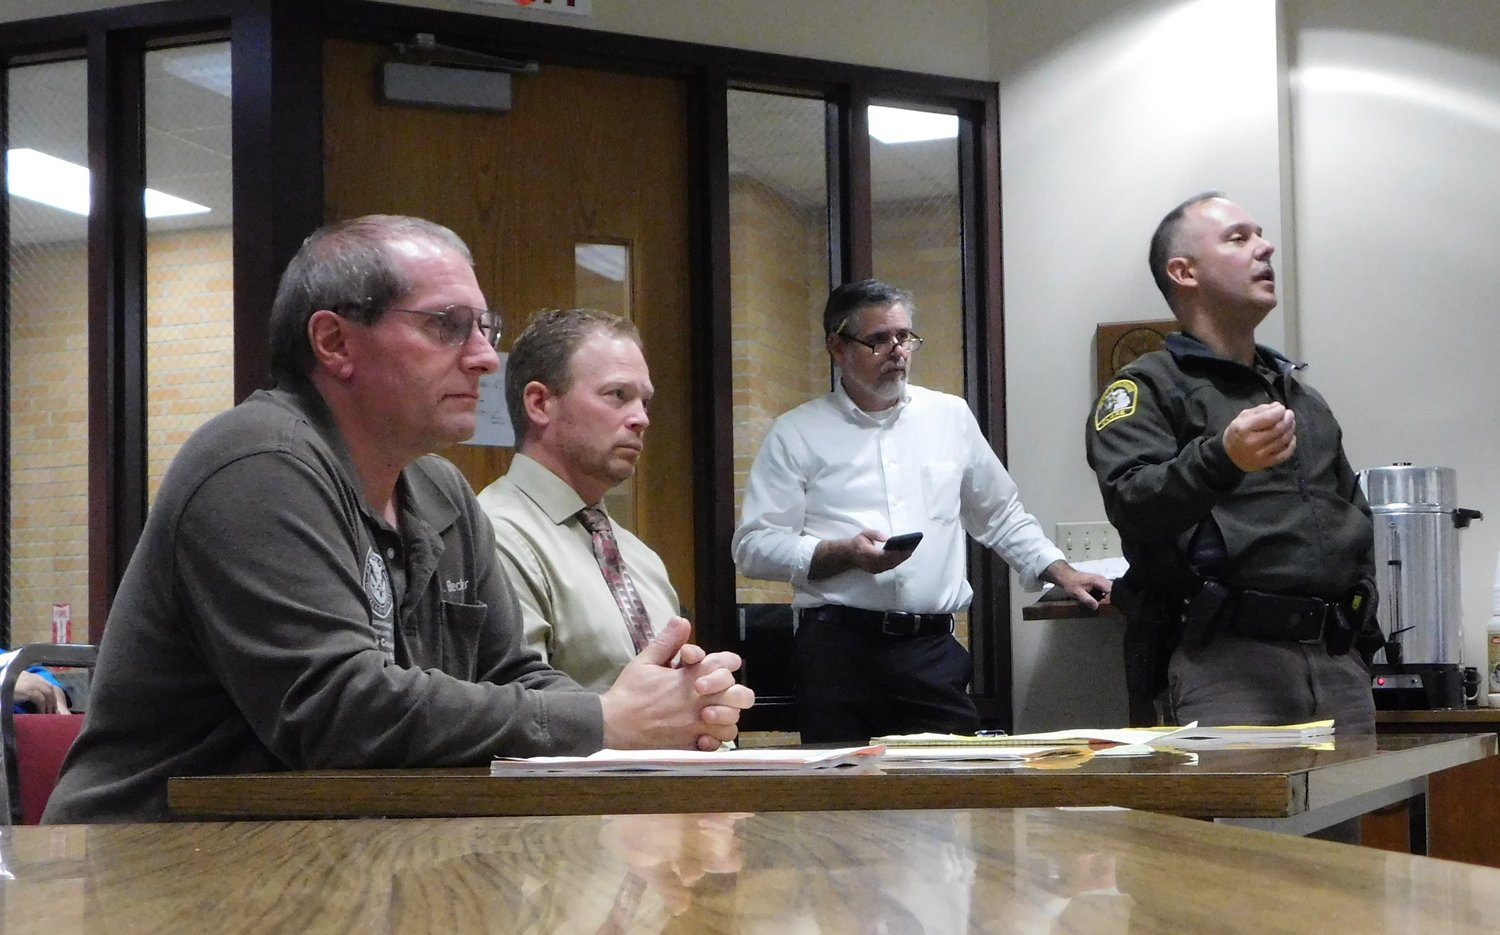 Pictured during the Oct. 16 meeting of the Clare County Board of Commissioners are, from left: Jerry Becker, Emergency Management director; District Court Judge Joshua Farrell; and Peter Preston, Equalization director – listening as Undersheriff Dwayne Miedzianowski describes the now commonplace occurrence of total security screening at schools, governmental and law enforcement buildings.